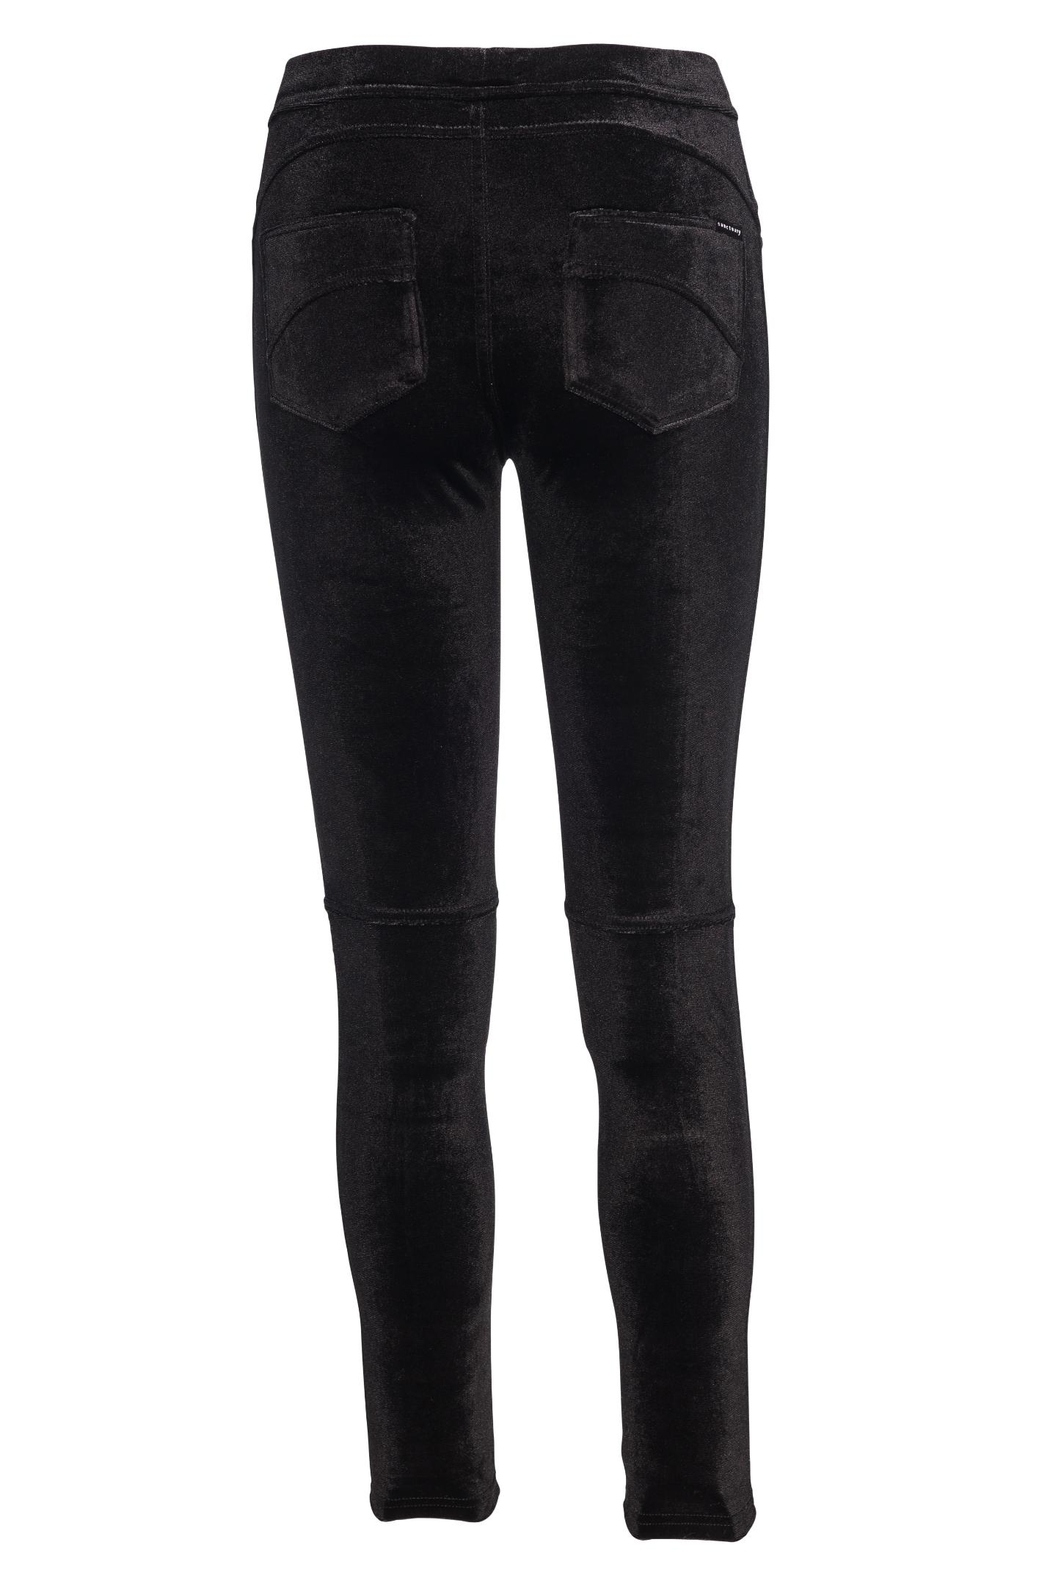 Sanctuary Velvet Grease Legging - Side Cropped Image